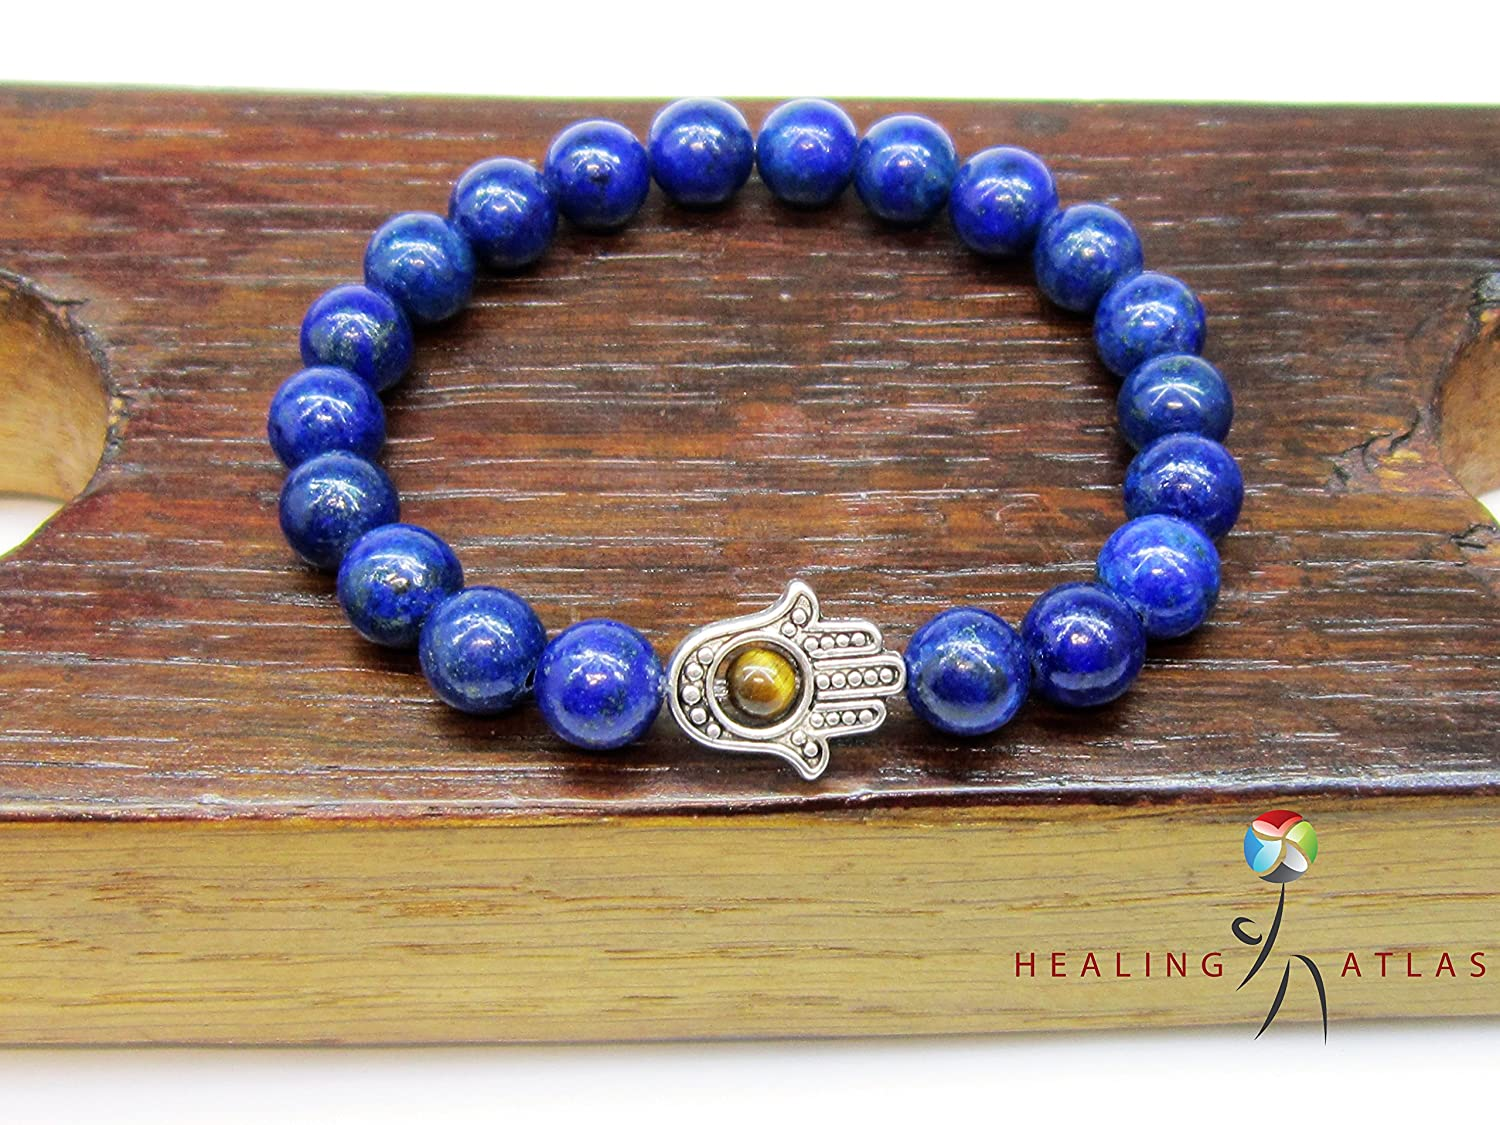 Tiger Eye stone bracelet with Hamsa Fatima hand jewelry gift for women Protection and Good luck amulet 8mm Yoga gift